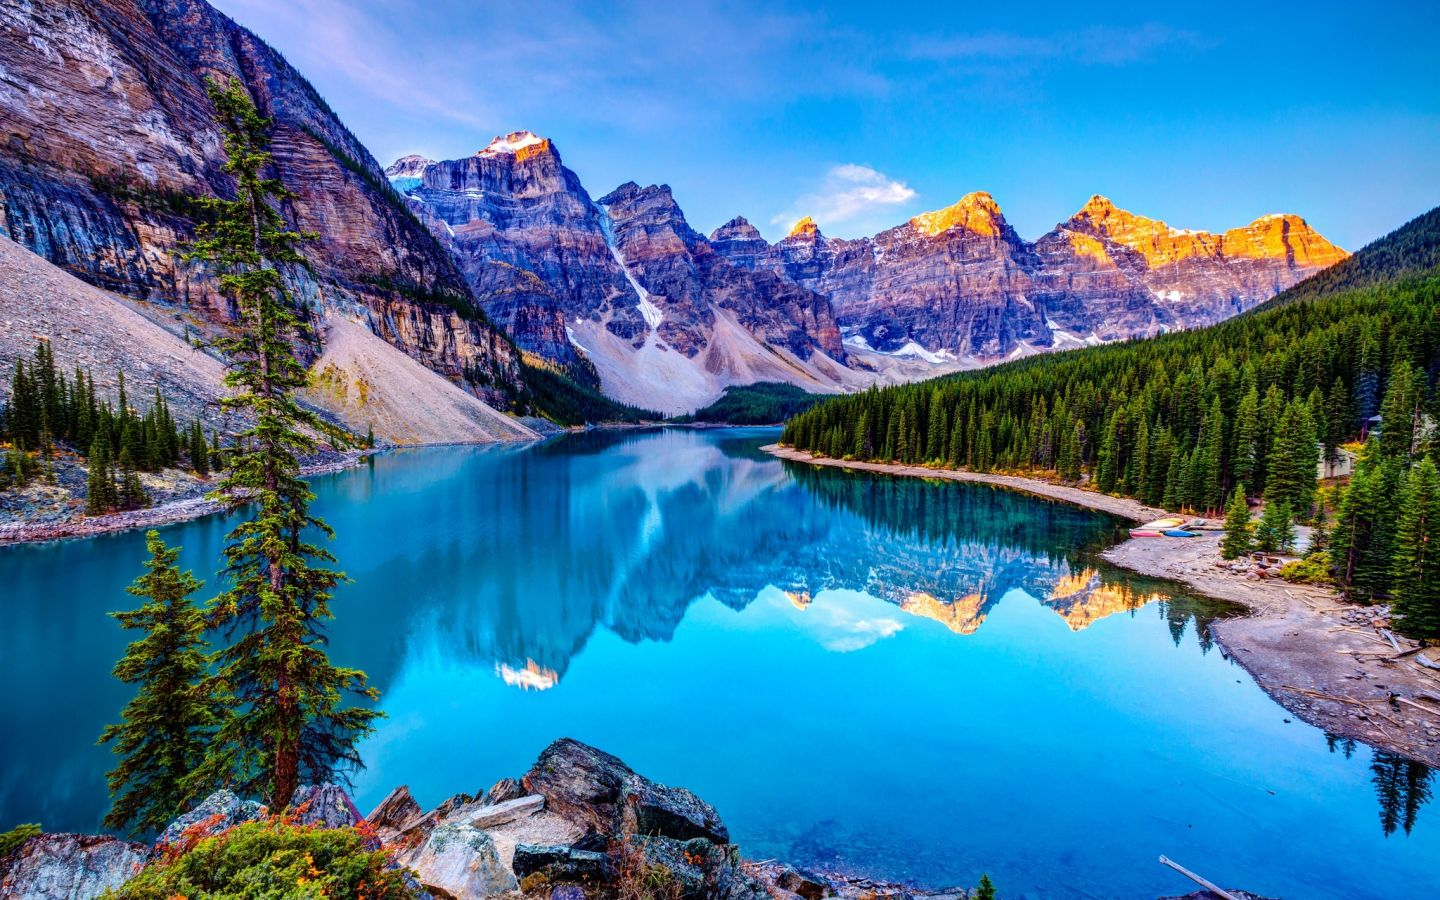 Nature wallpapers high resolution free download high resolution nature wallpapers high resolution free download high resolution pic voltagebd Images